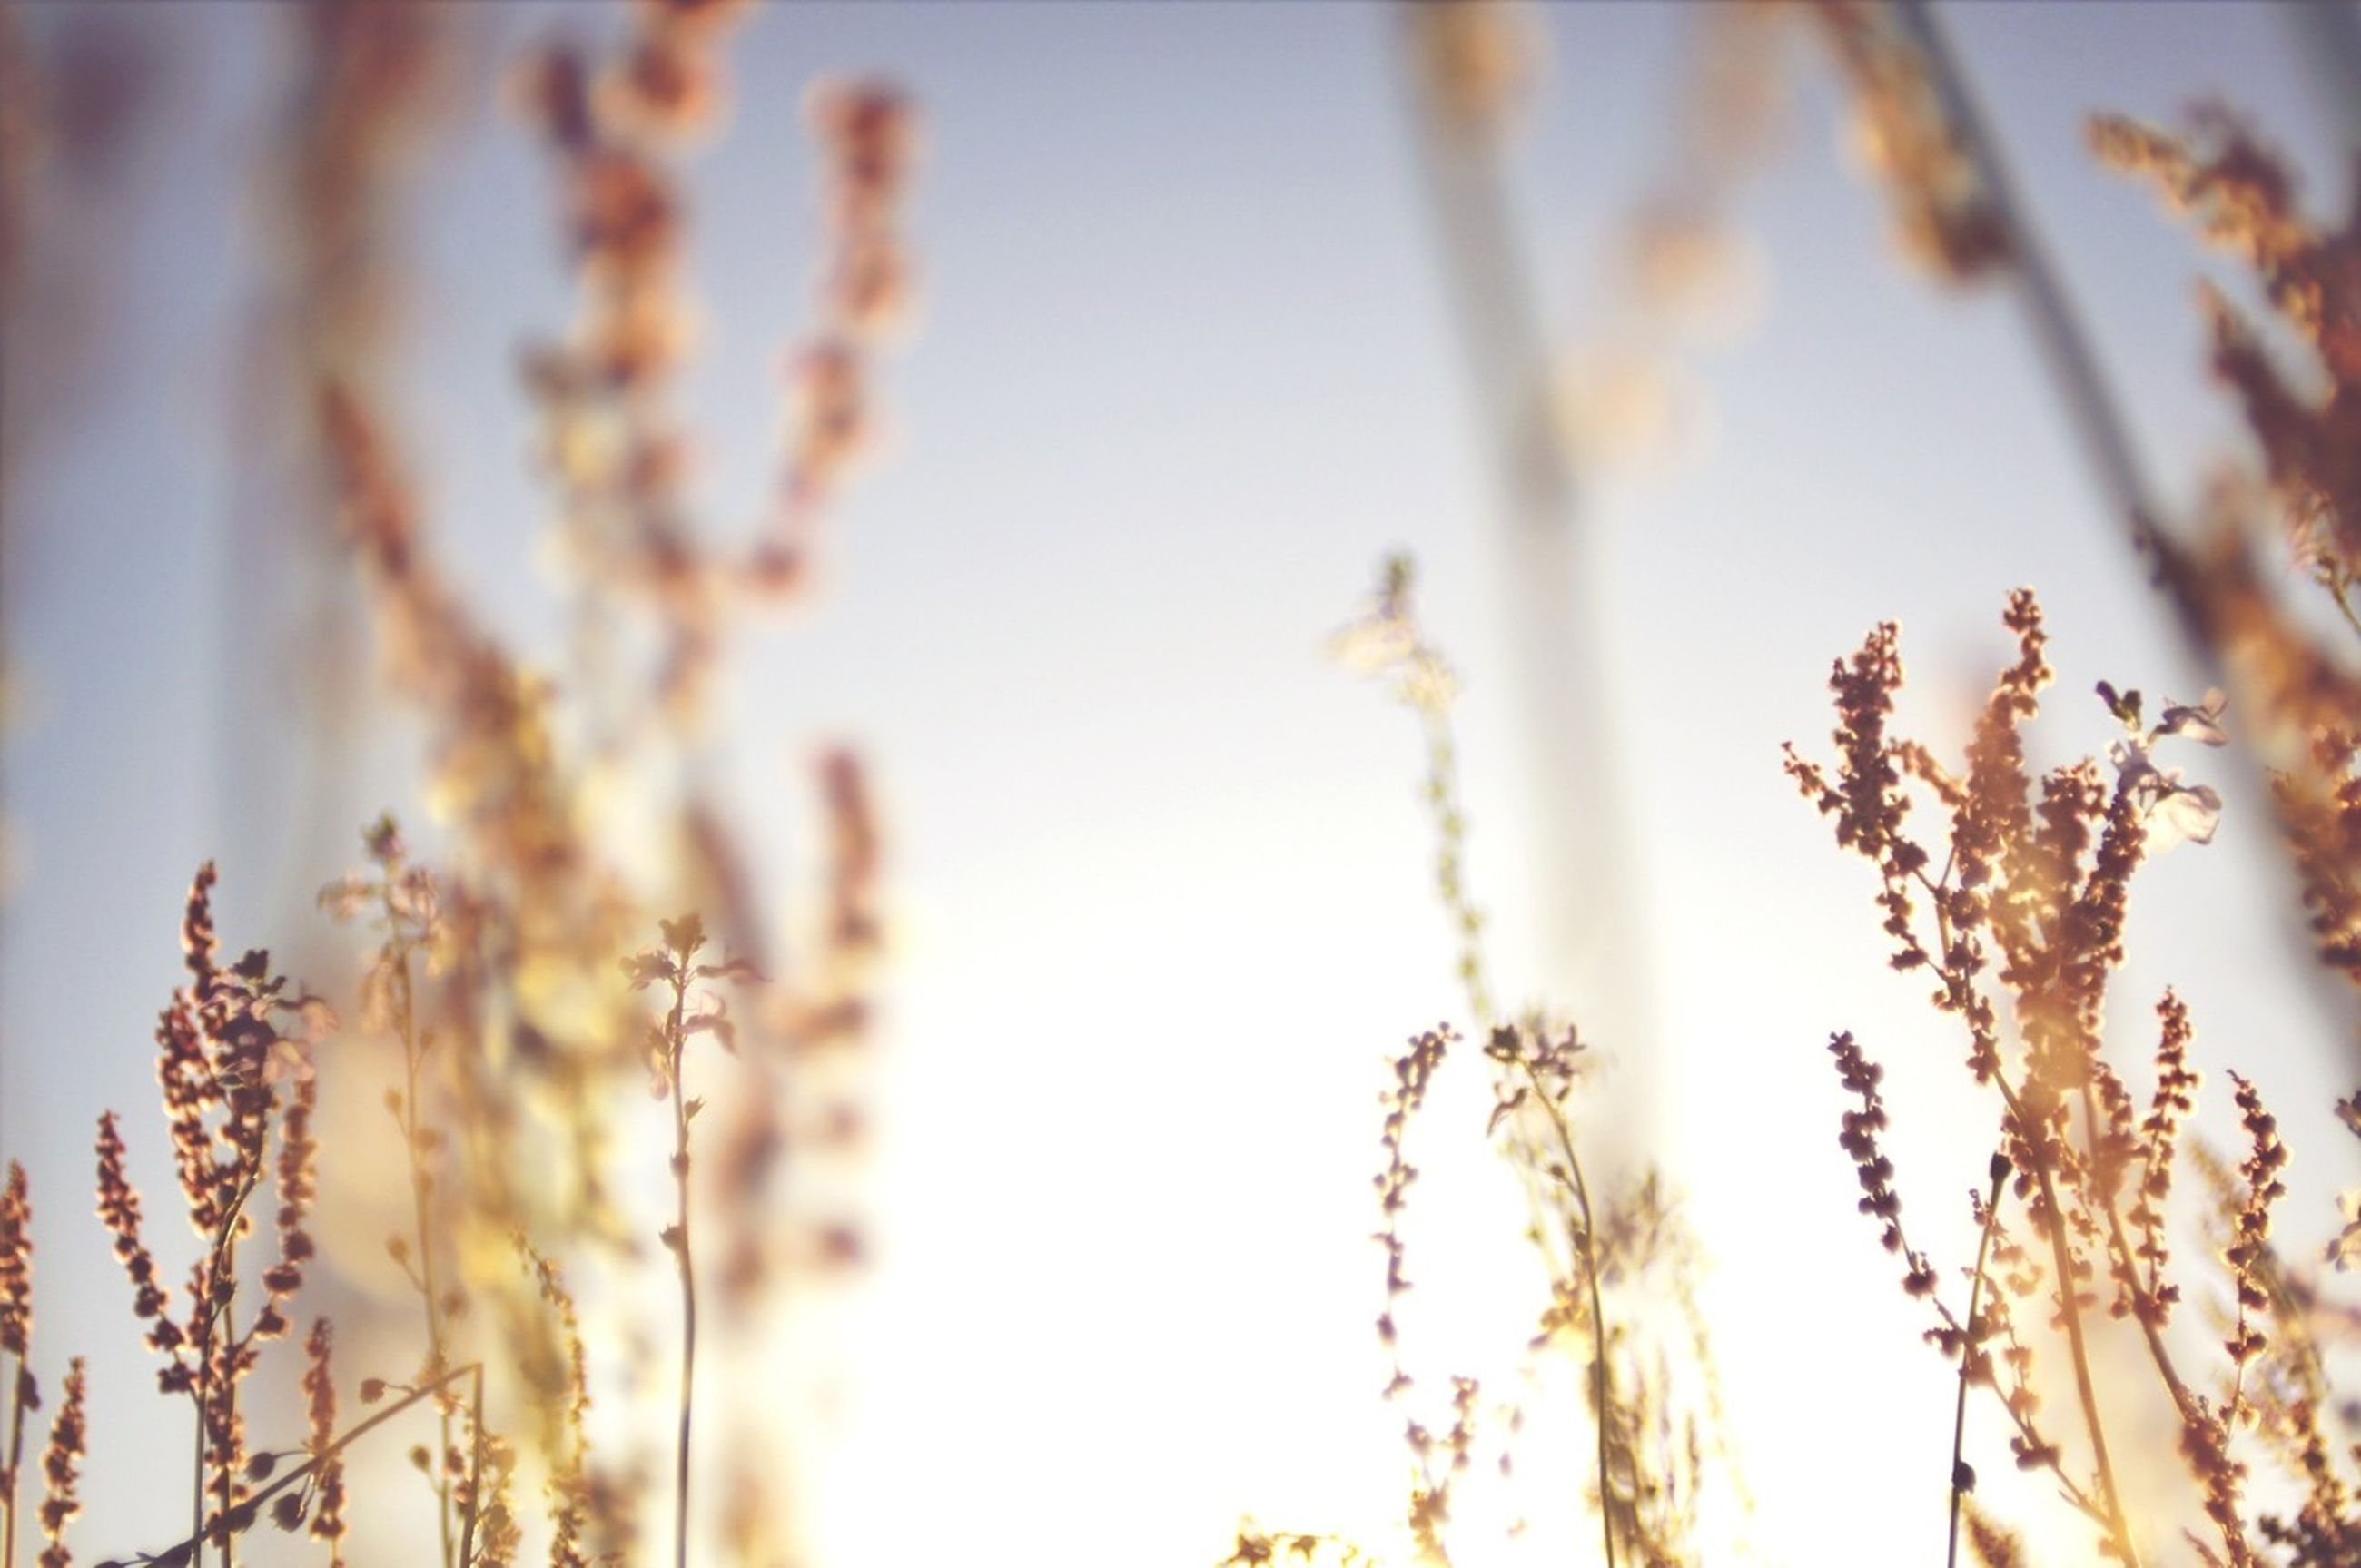 focus on foreground, growth, plant, nature, close-up, stem, selective focus, beauty in nature, growing, tranquility, field, twig, flower, outdoors, freshness, day, no people, dry, fragility, branch